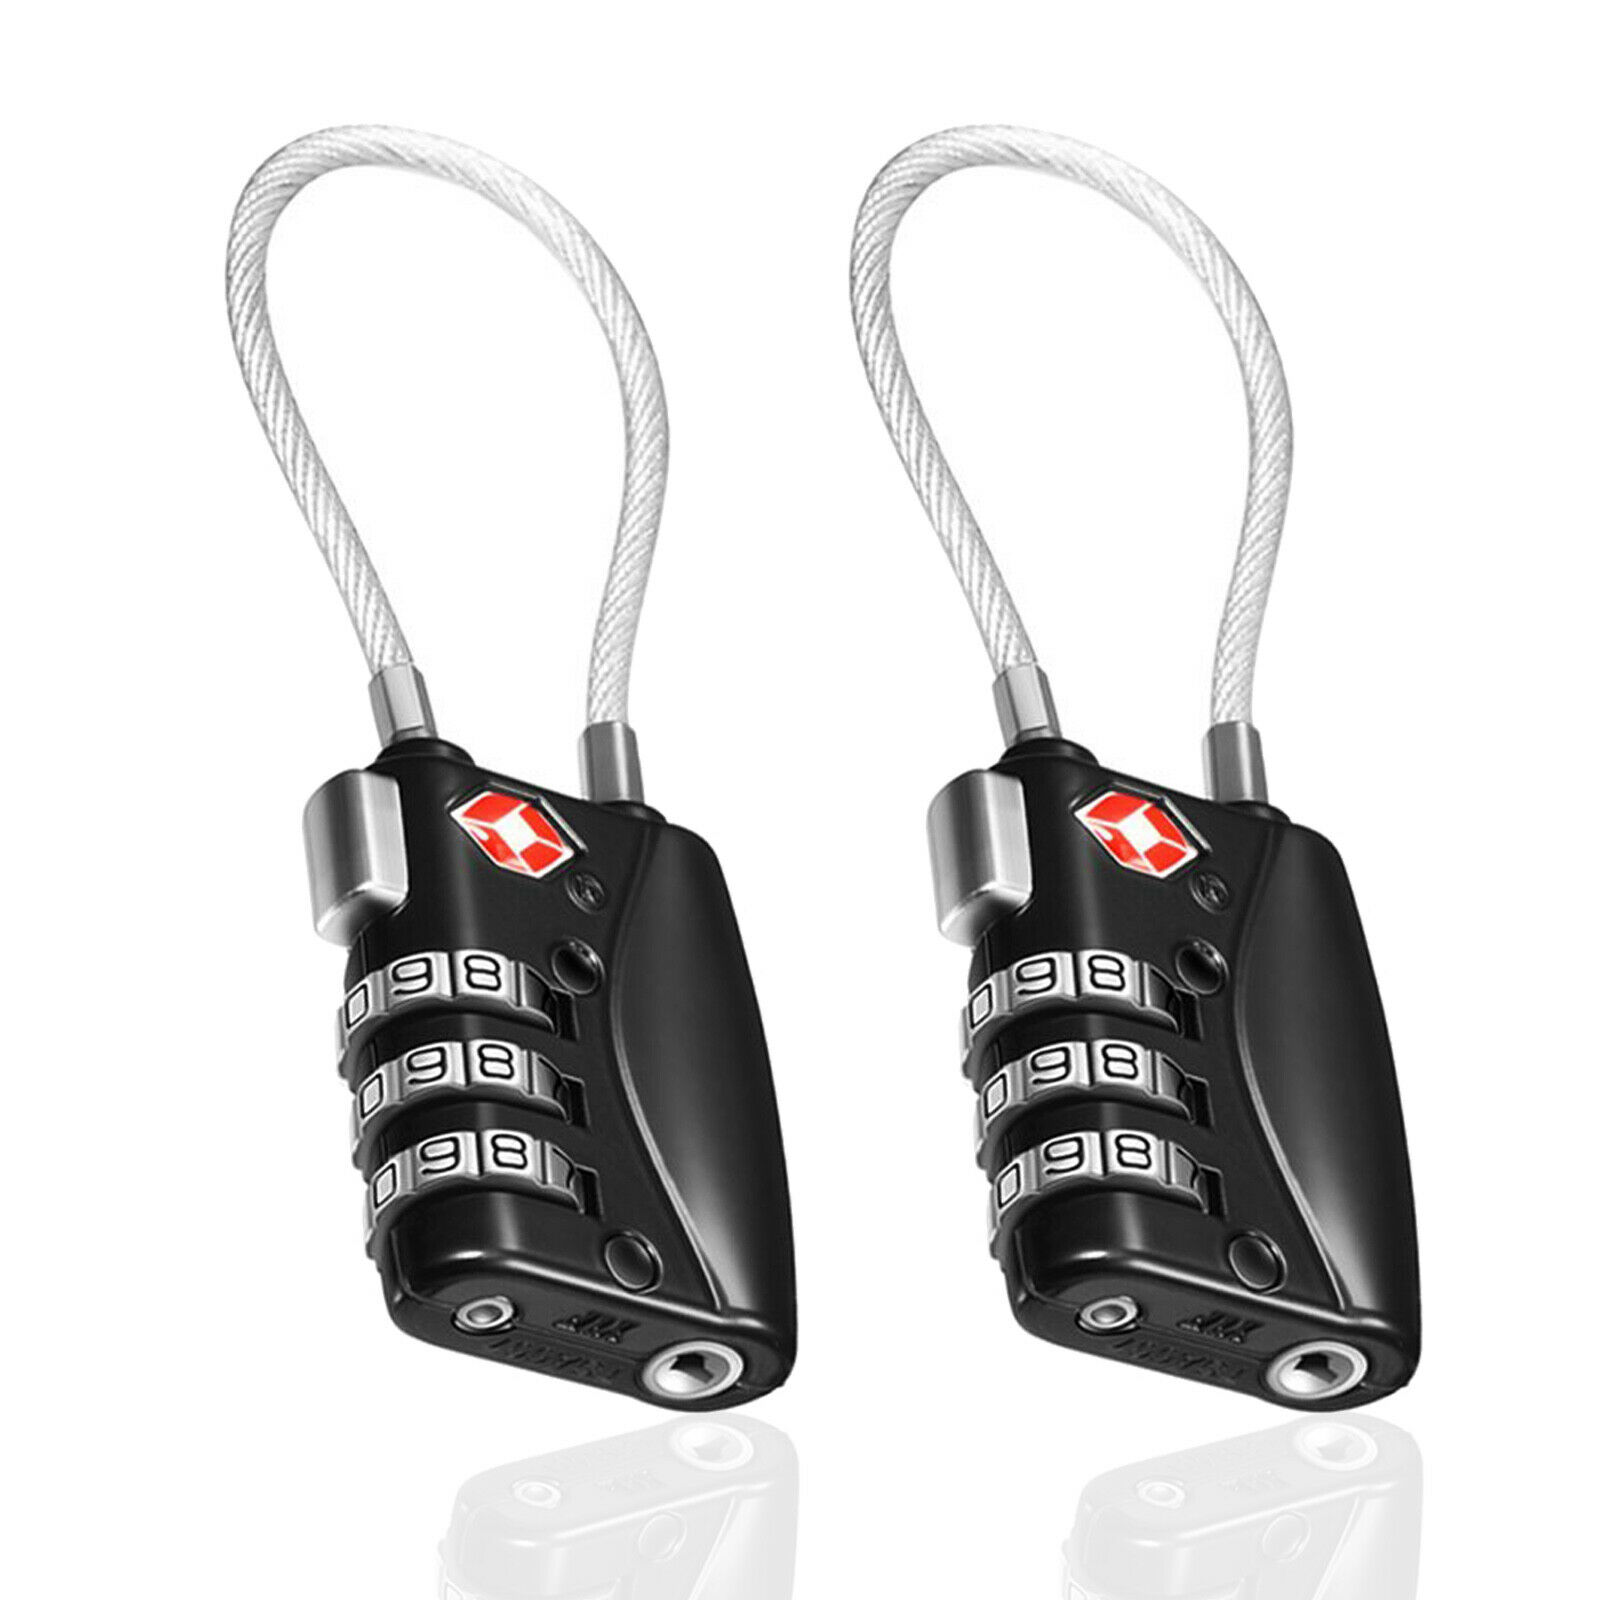 TSA Approve 3 Digit Combination Travel Suitcase Luggage Bag Lock Padlock Reset - $10.44